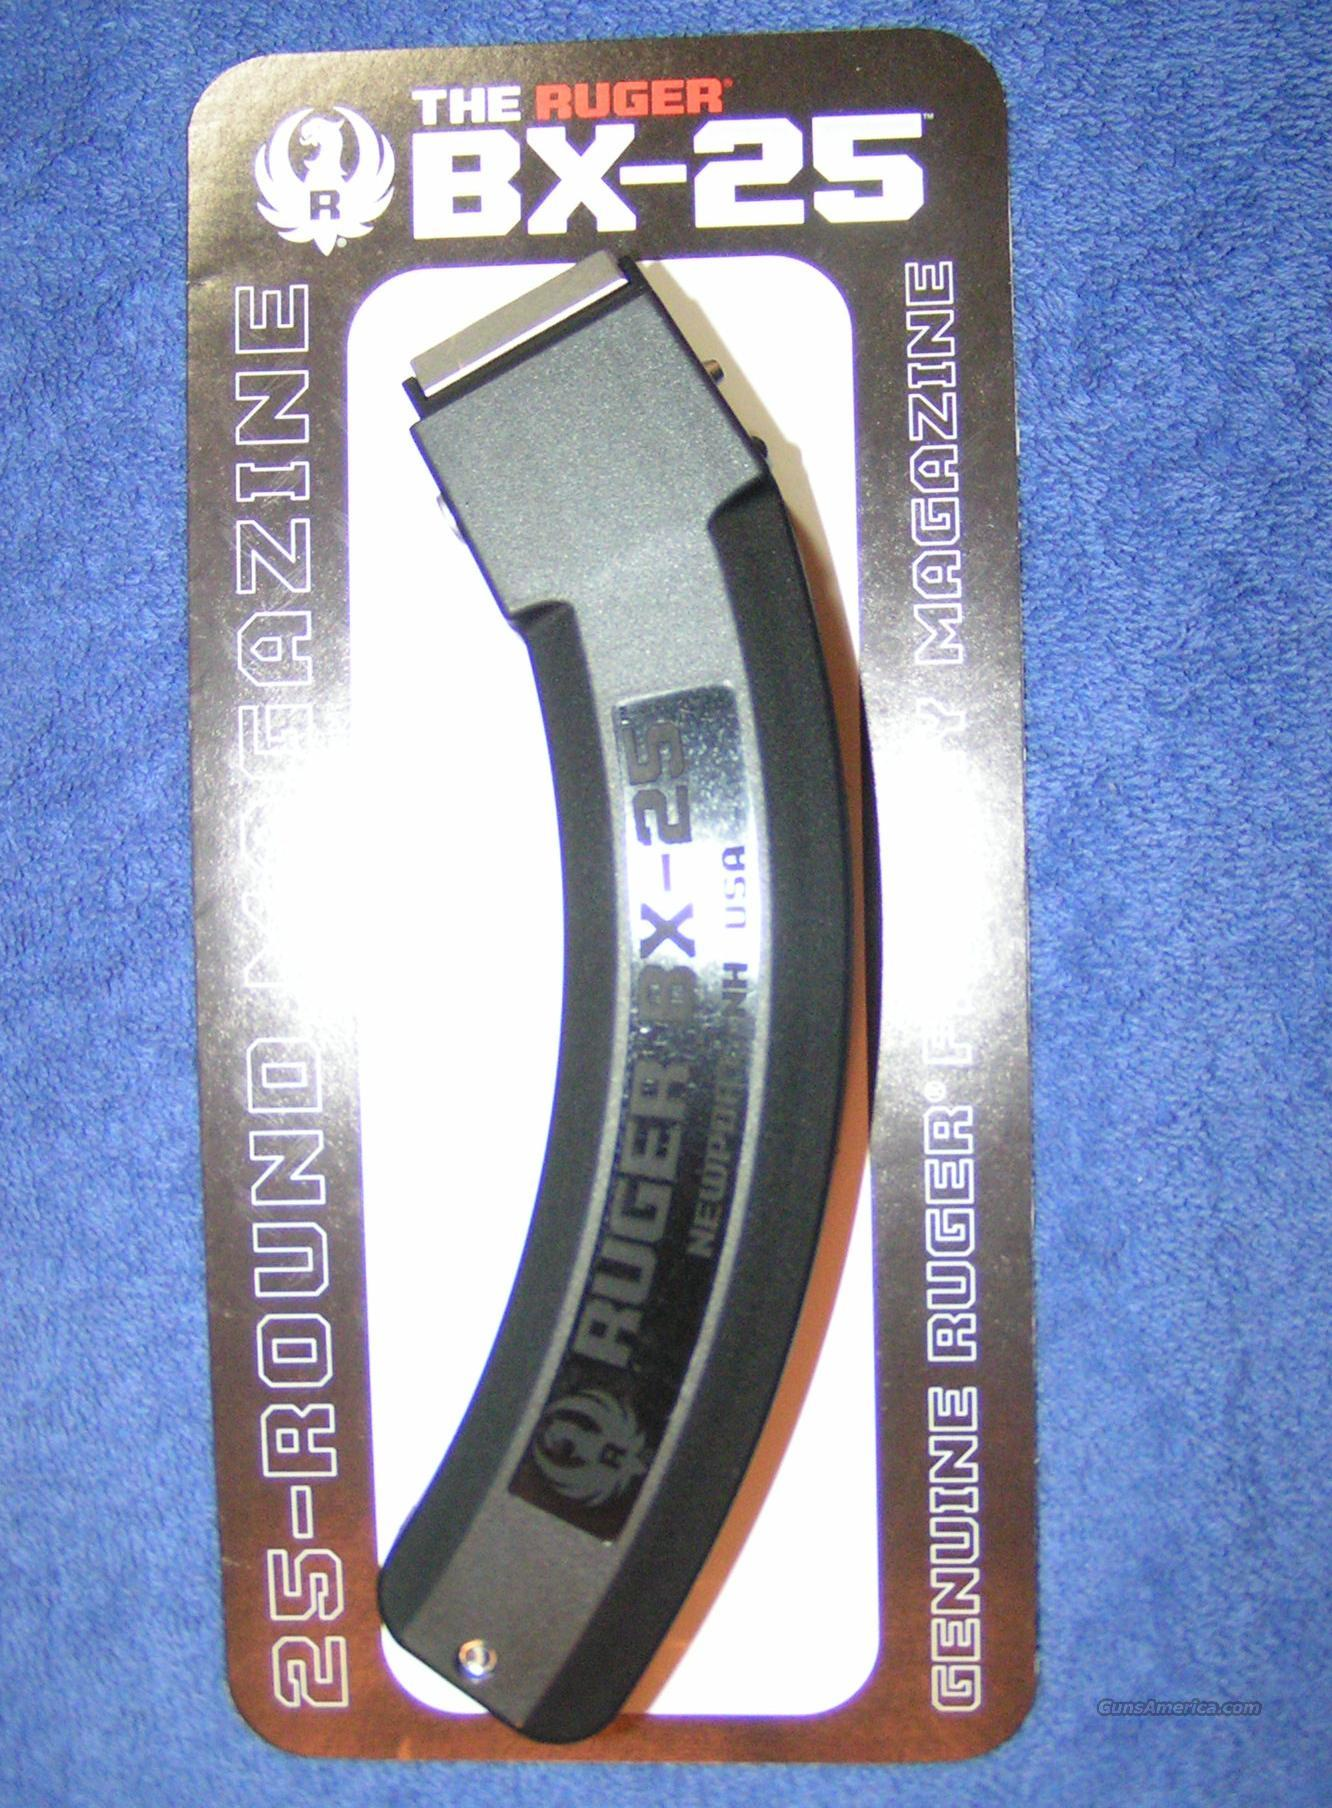 10/22 mag factory Ruger 25 rd BX-25 1022 $24   Non-Guns > Magazines & Clips > Rifle Magazines > 10/22